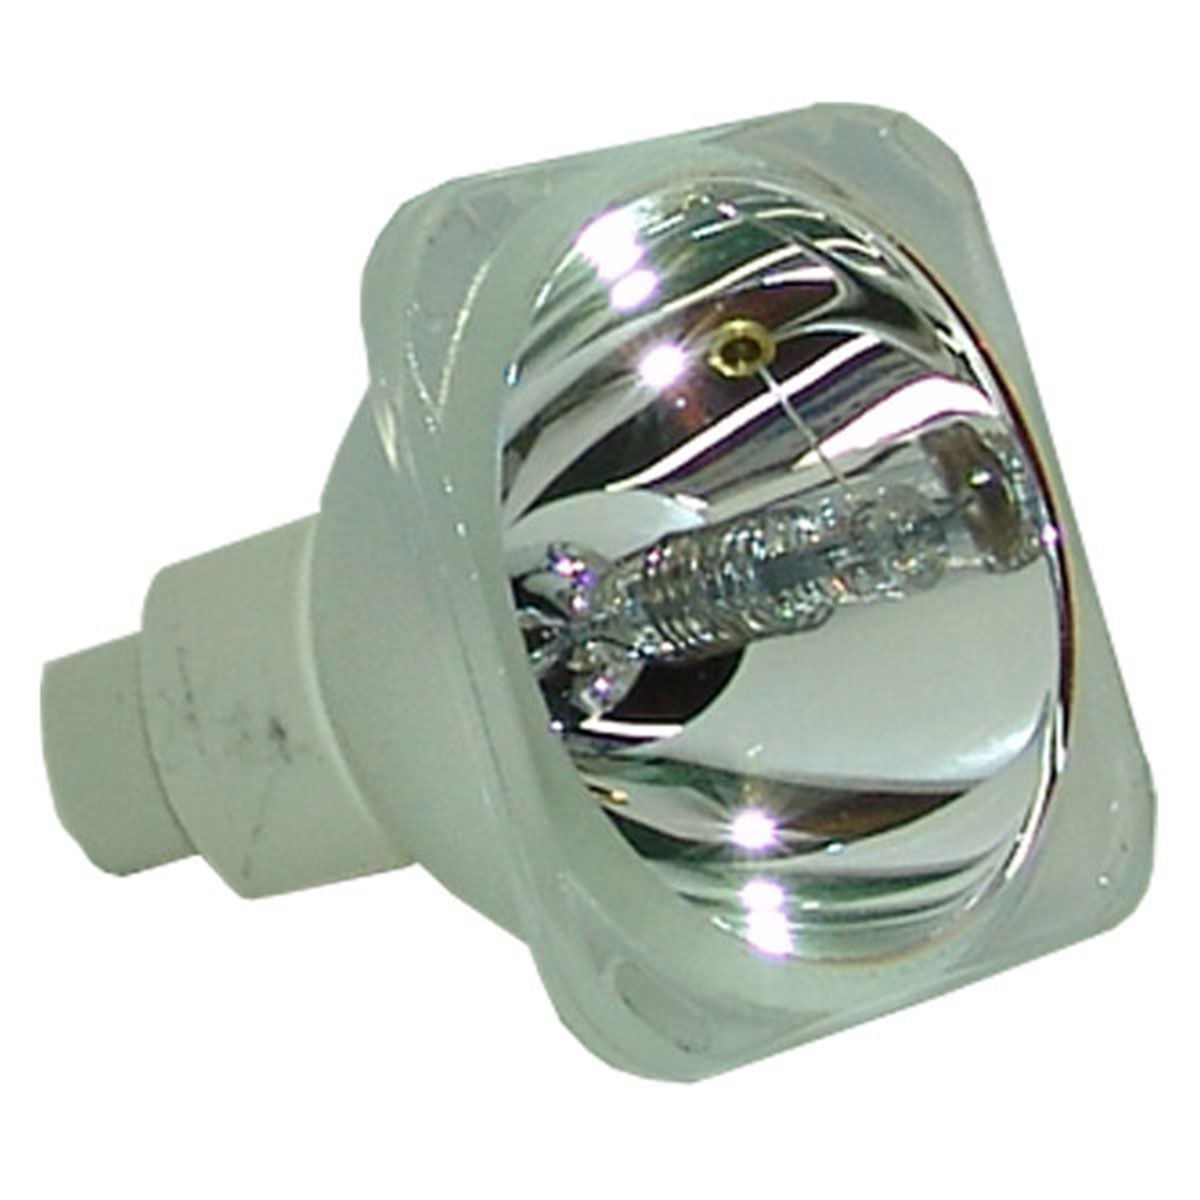 Compatible Bare Bulb 5811100560-S 5811100560S for VIVITEK D5500 D5510 Projector Lamp Bulb without housing redfox гамаши multisport s 5510 салатный черный